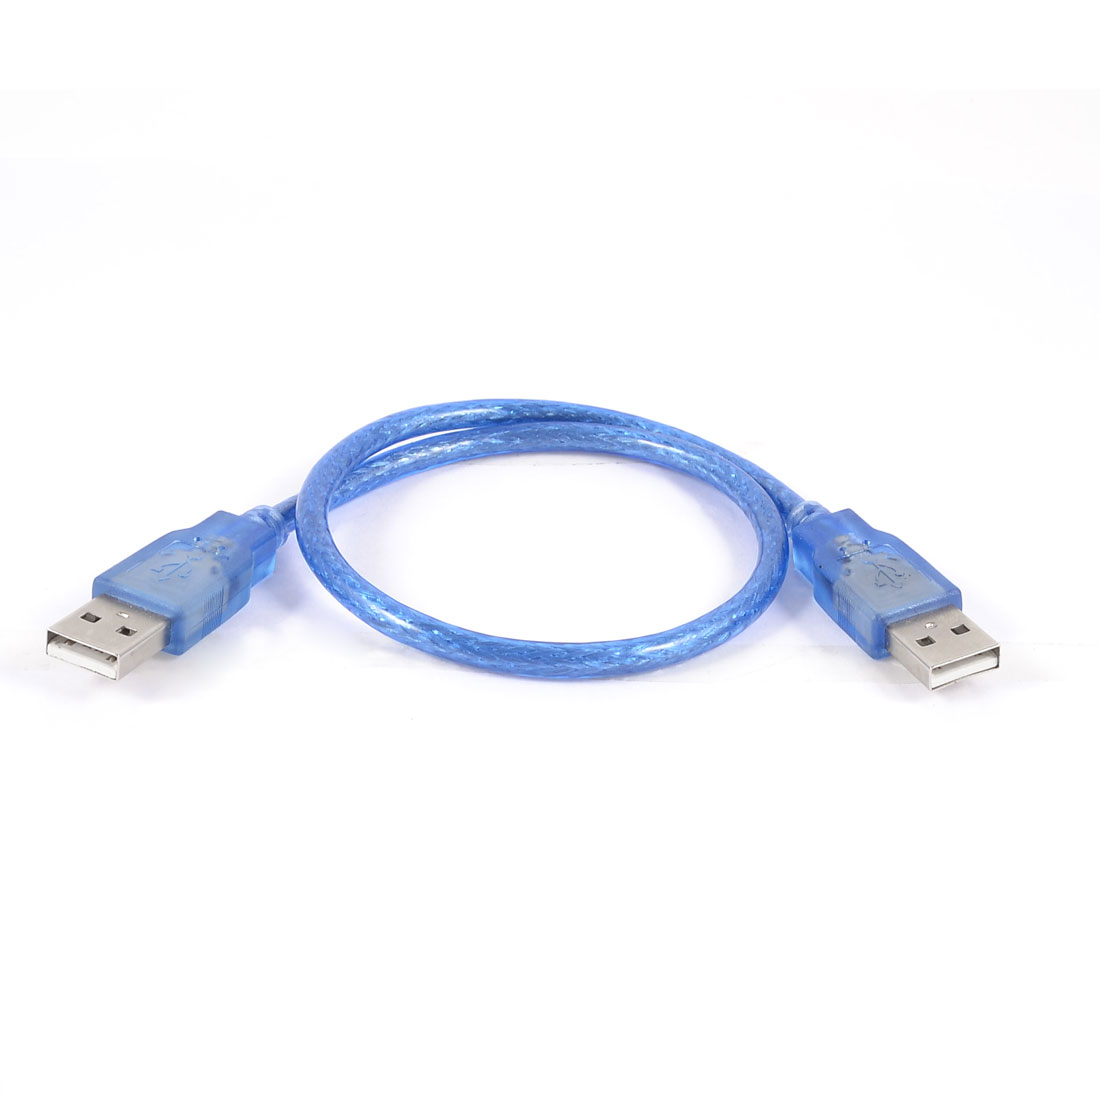 Blue Plastic Housing USB 2.0 Male to Male AM/AM Extension Cable Lead 45cm